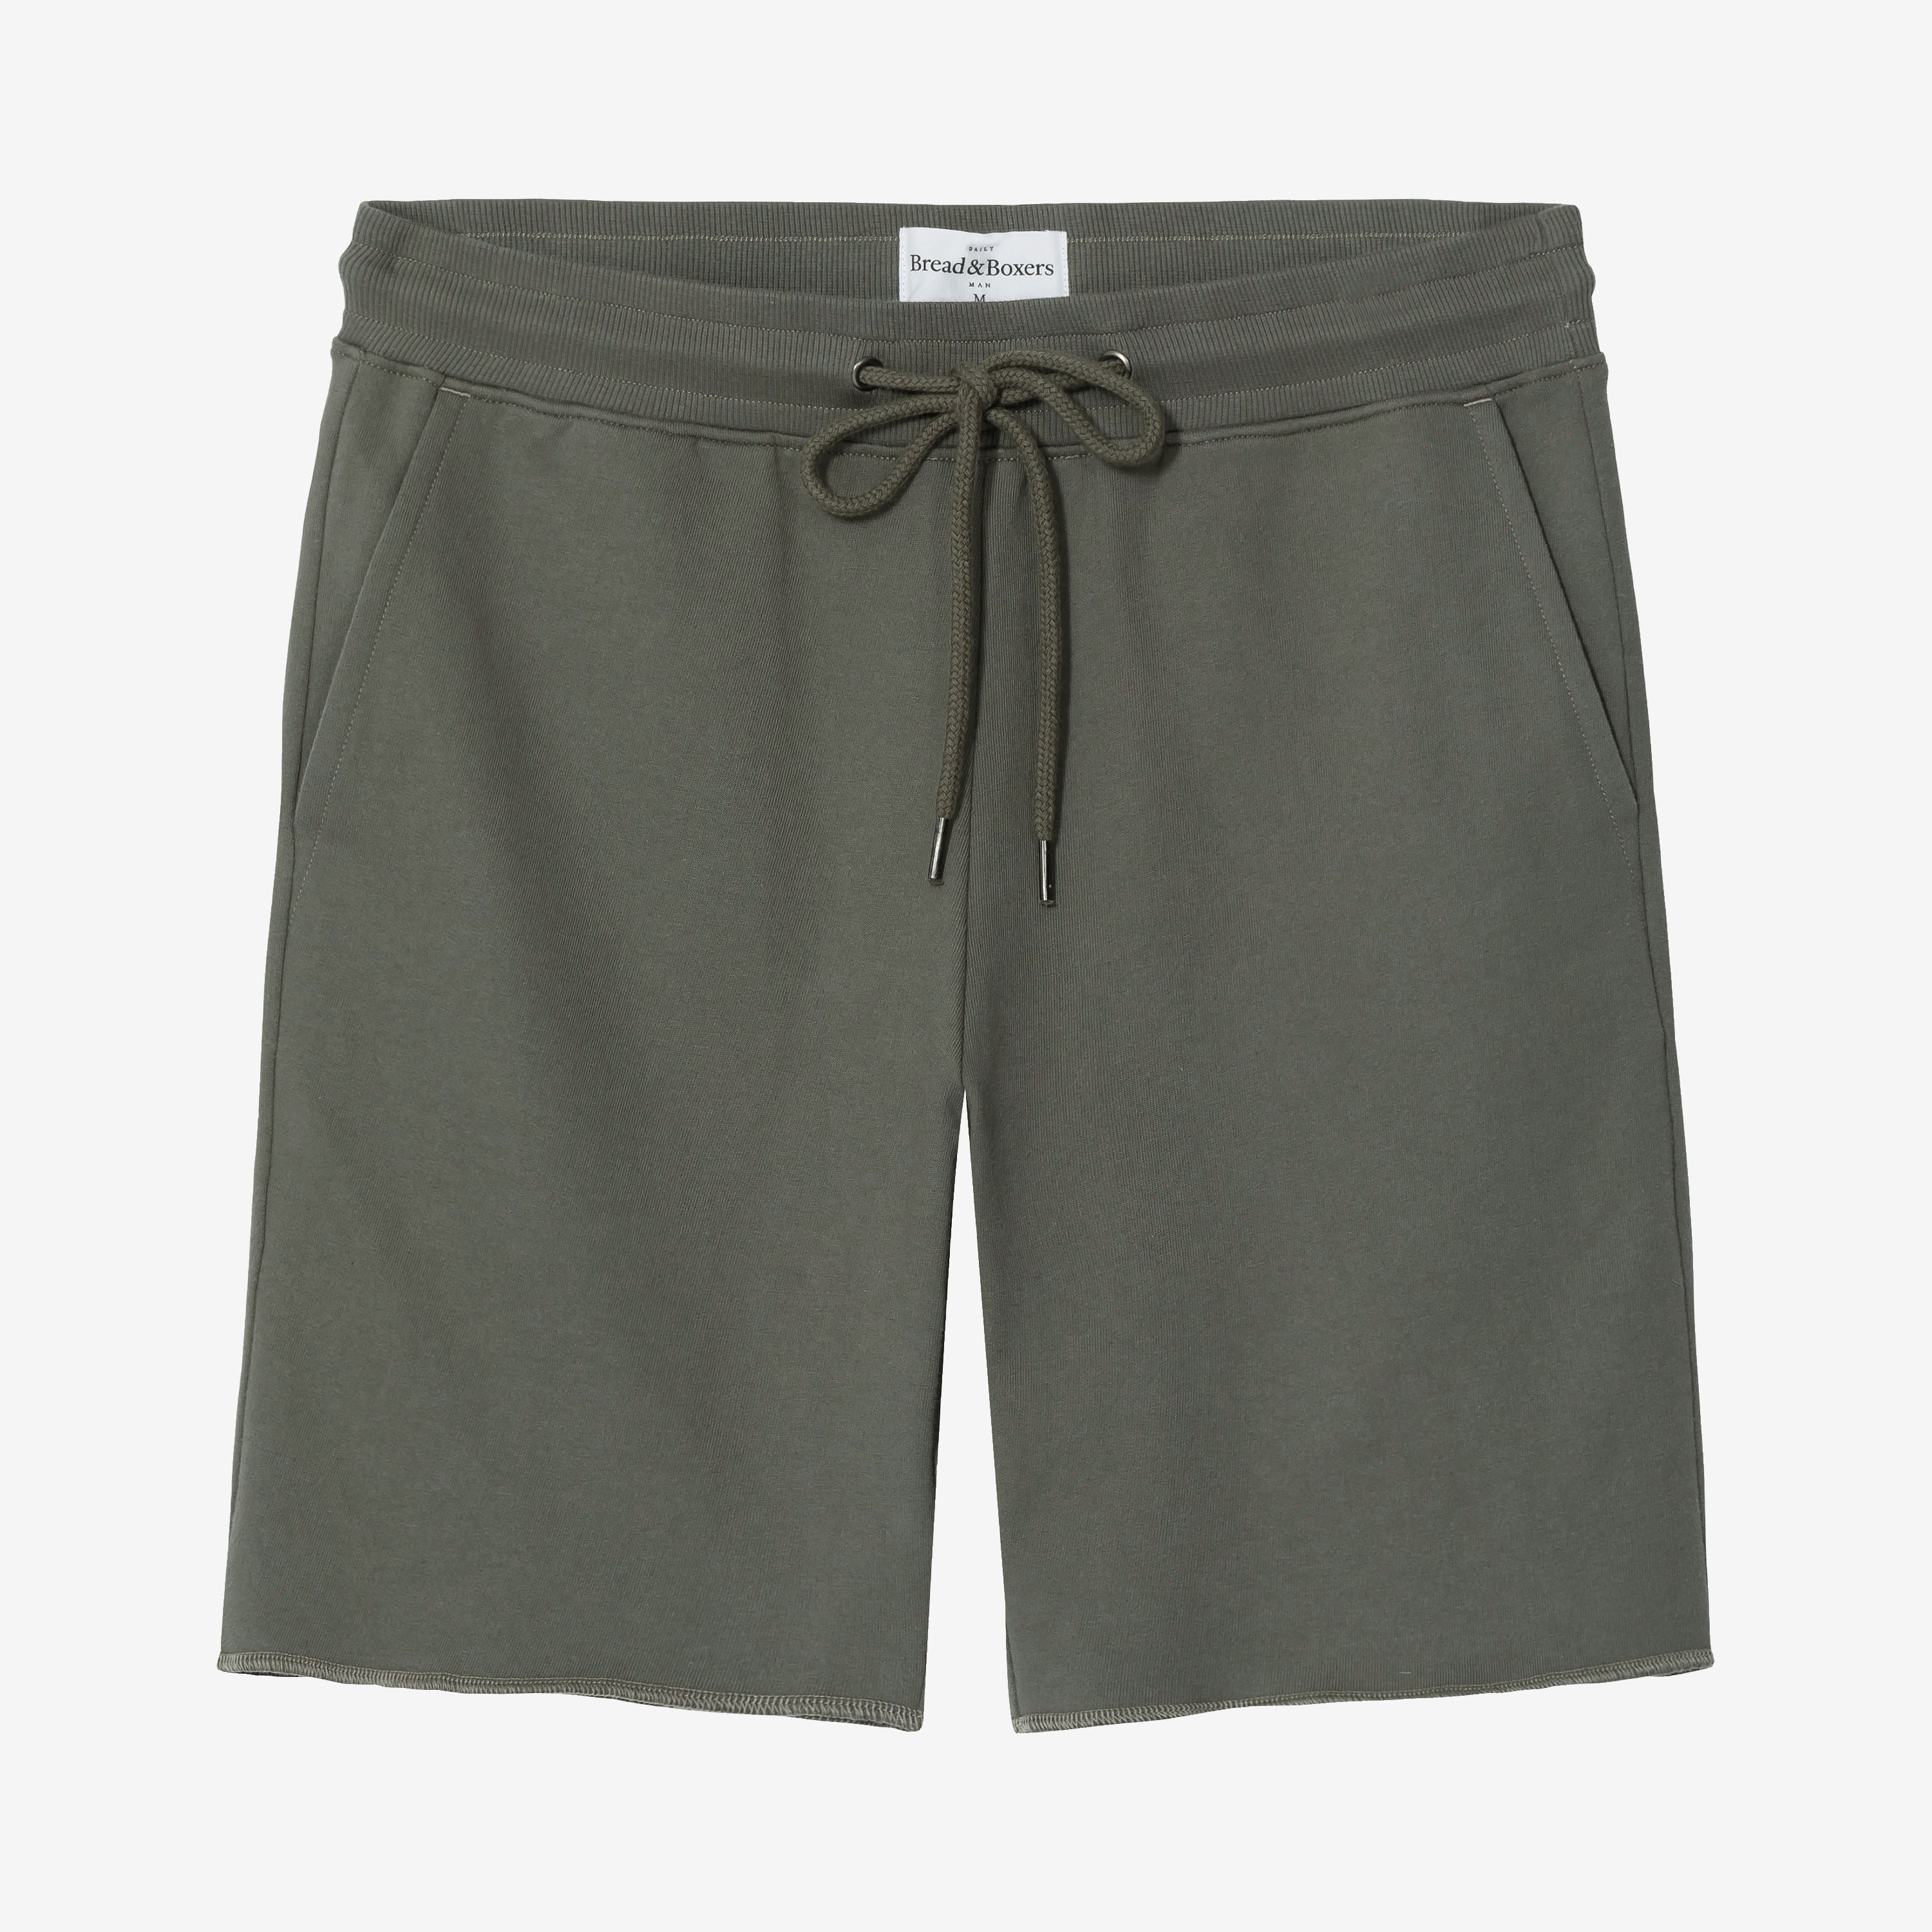 424240_Man_Lounge_Short_Olive_Green_A